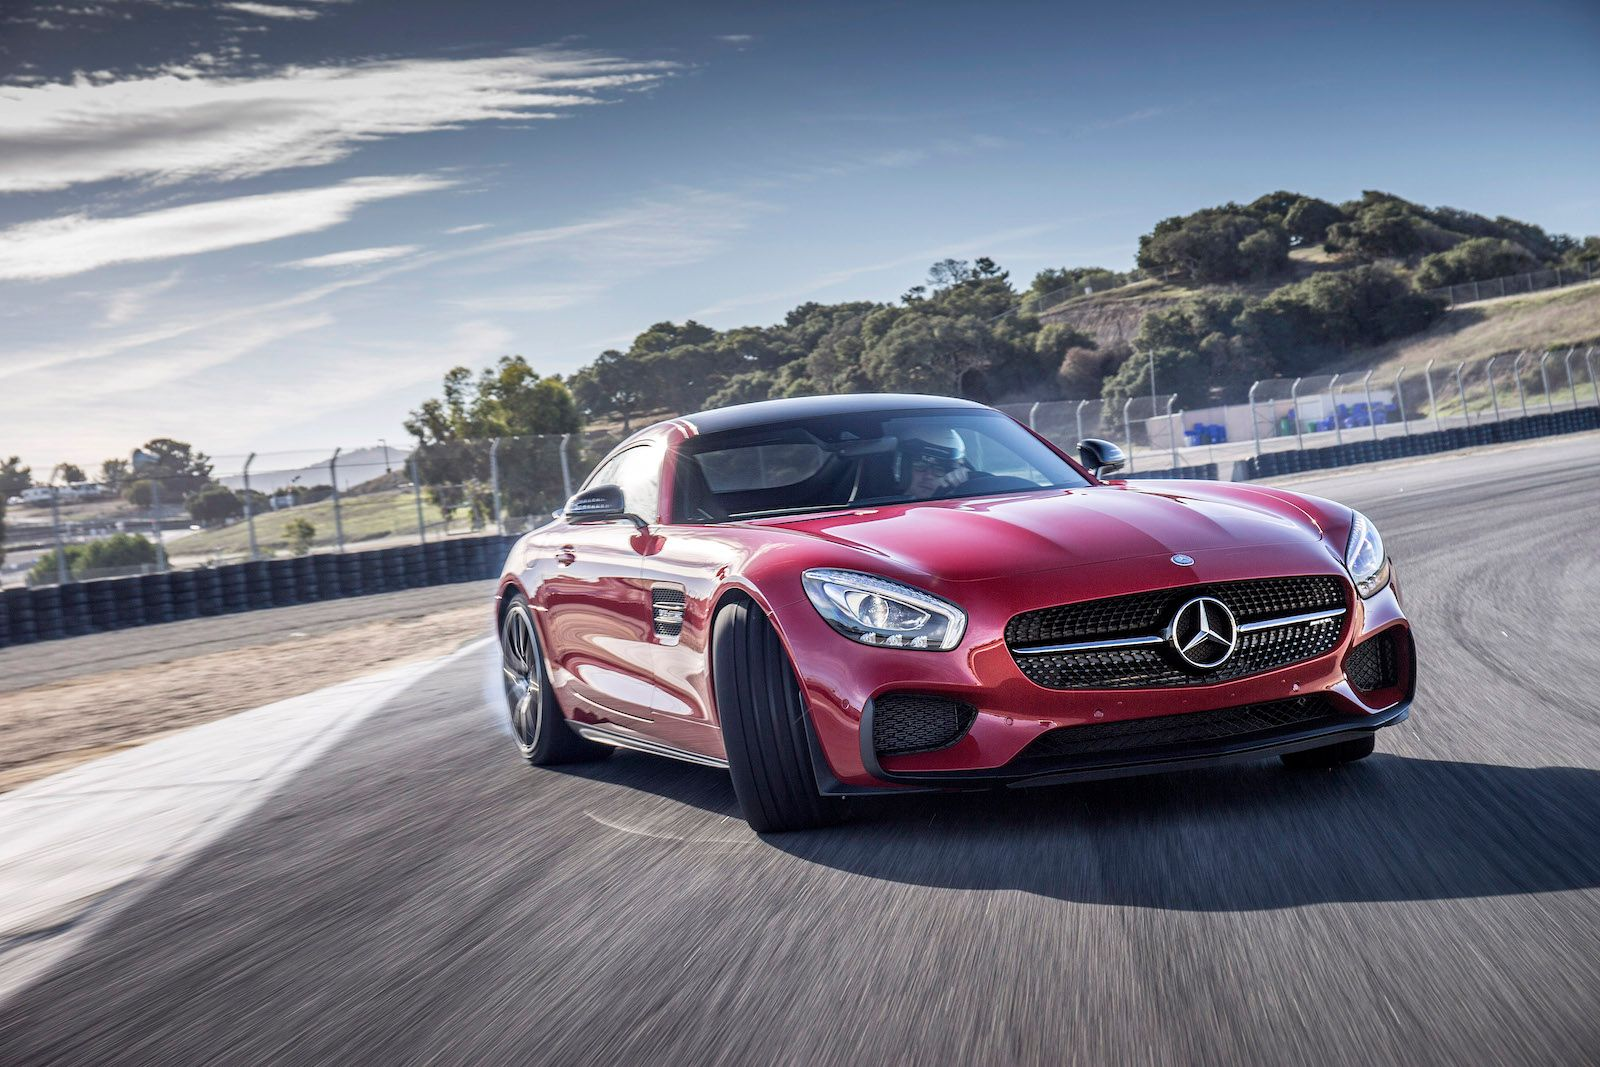 http://static0.therichestimages.com/cdn/1000/666/90/cw/wp-content/uploads/2015/04/Mercedes-Benz-AMG-GT-S.jpg